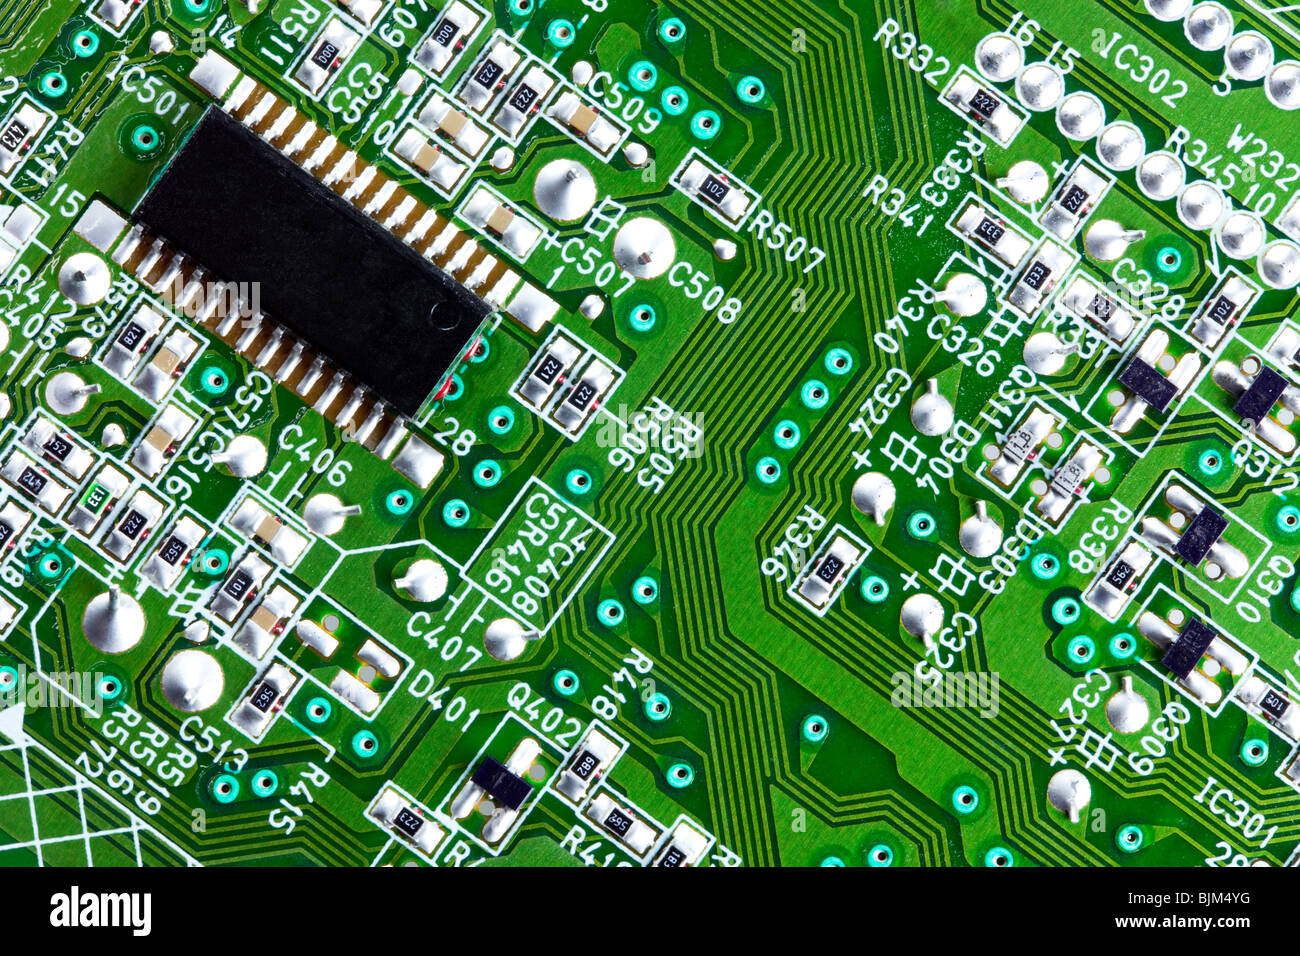 Macro shot of an electrical circuit board and computer chip - Stock Image